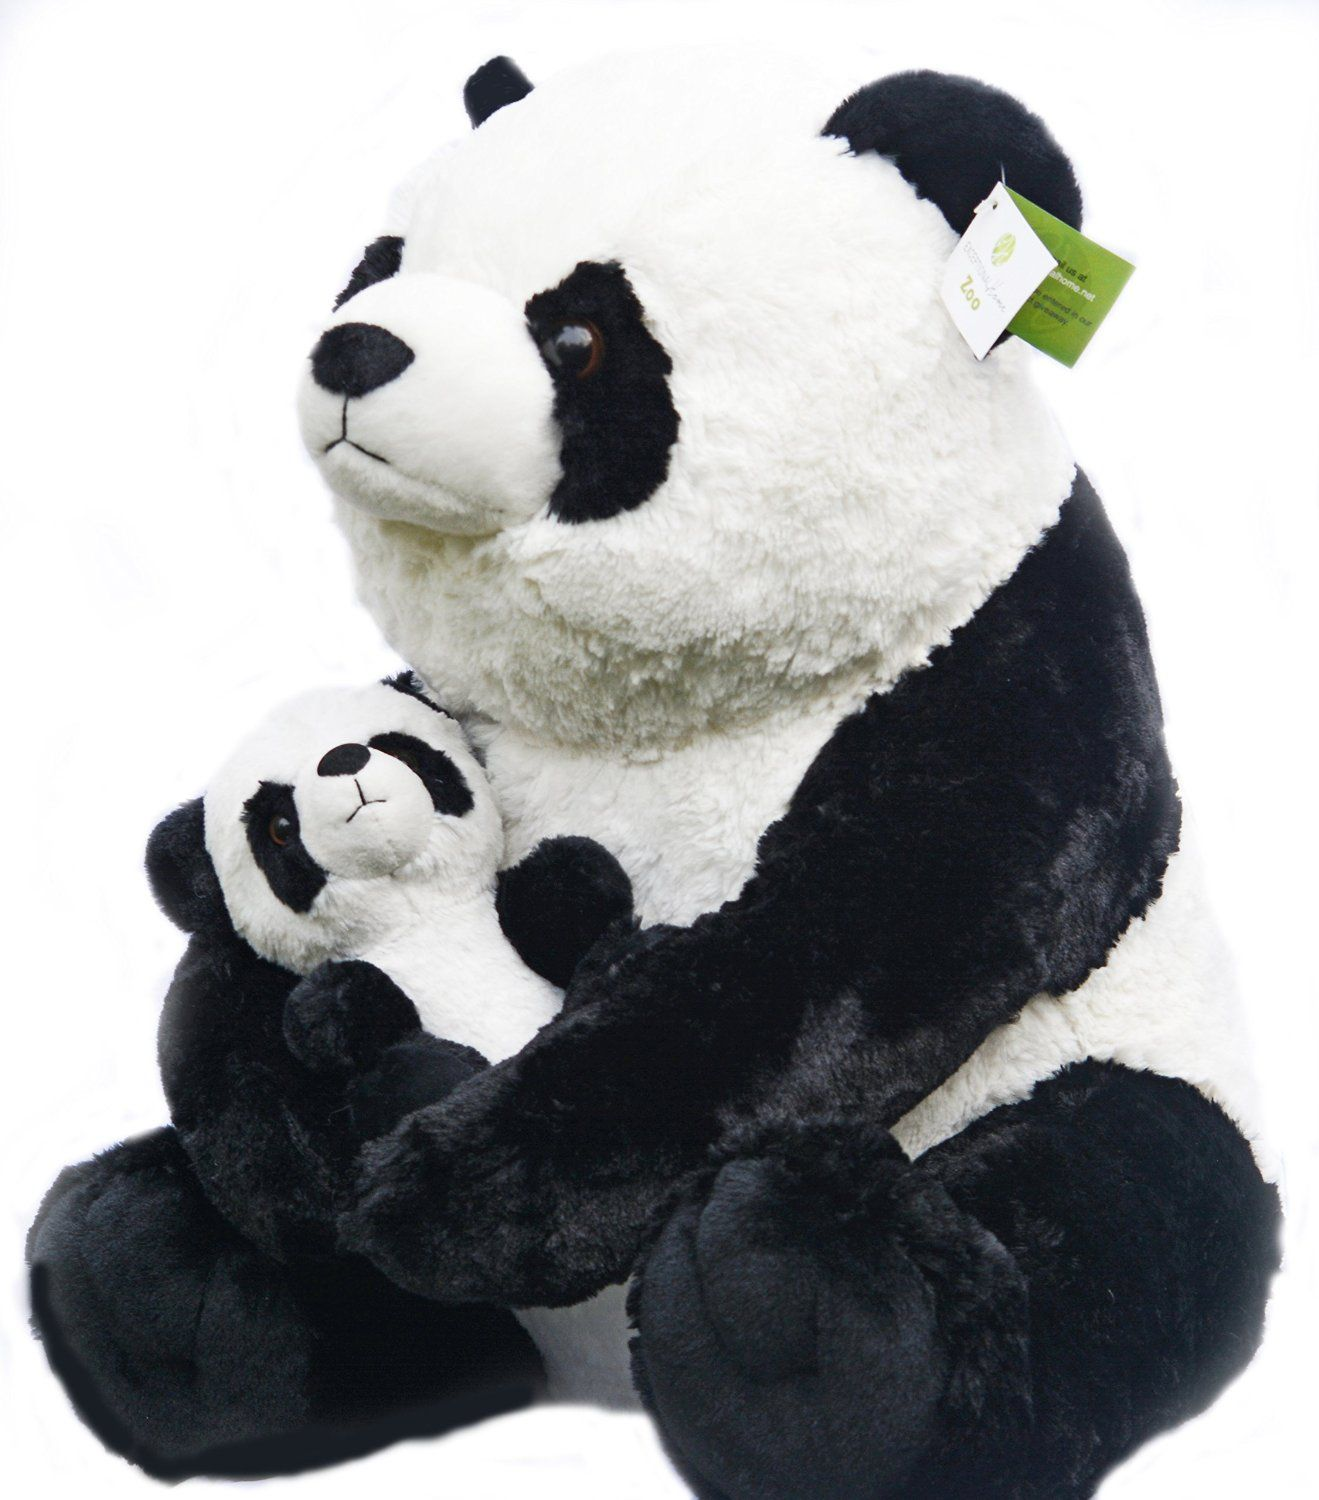 Amazon.com  Giant Panda Teddy Bear with Baby Panda - Plush Stuffed Animals  Gift Set 4c7bee47996e